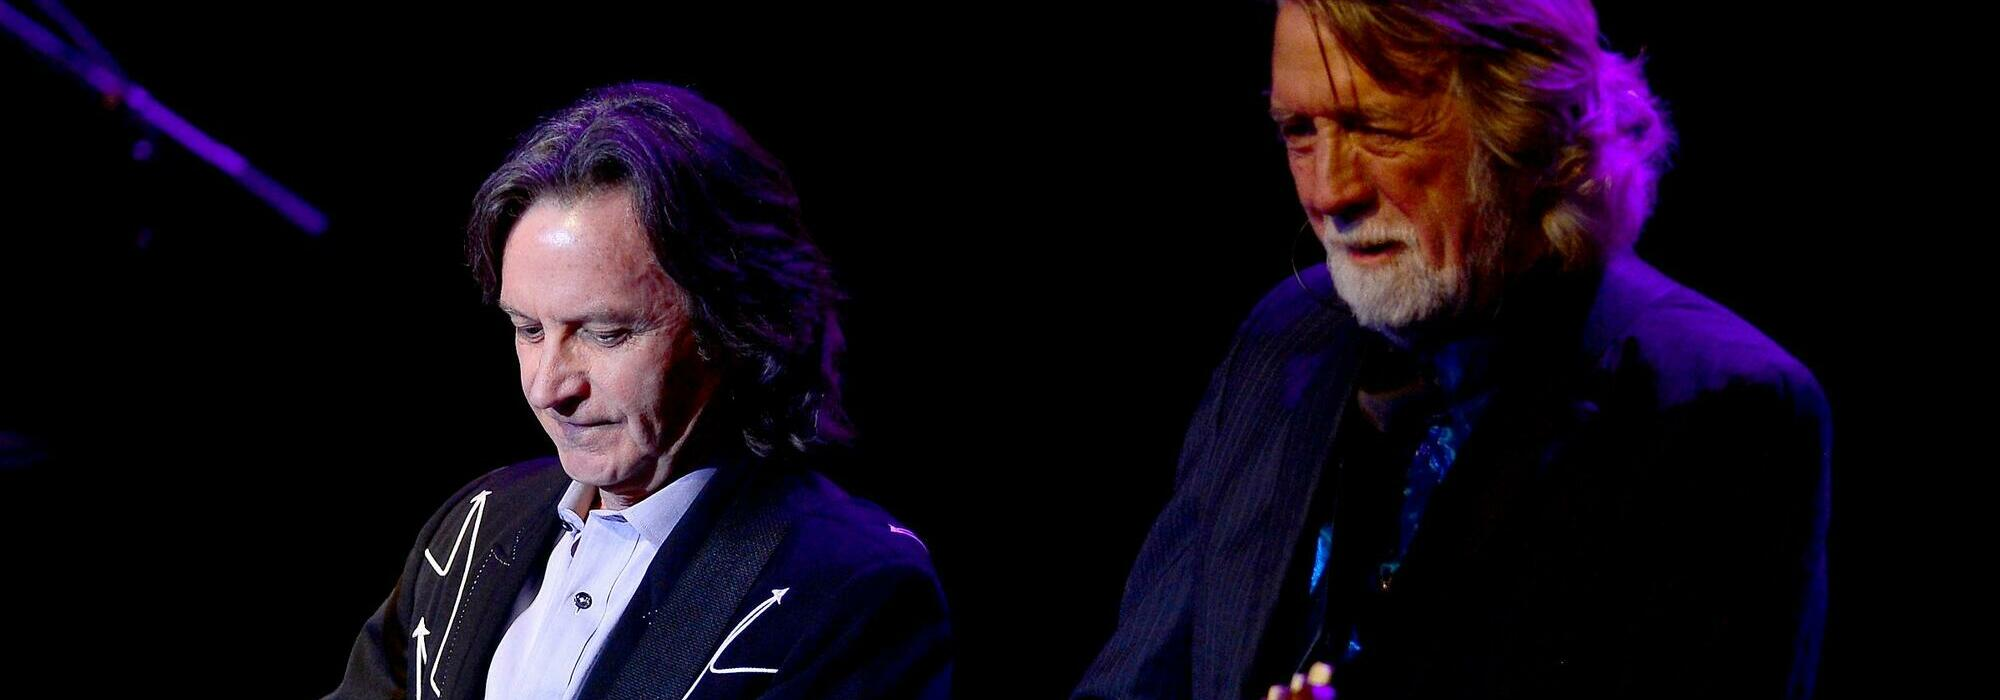 A Nitty Gritty Dirt Band live event